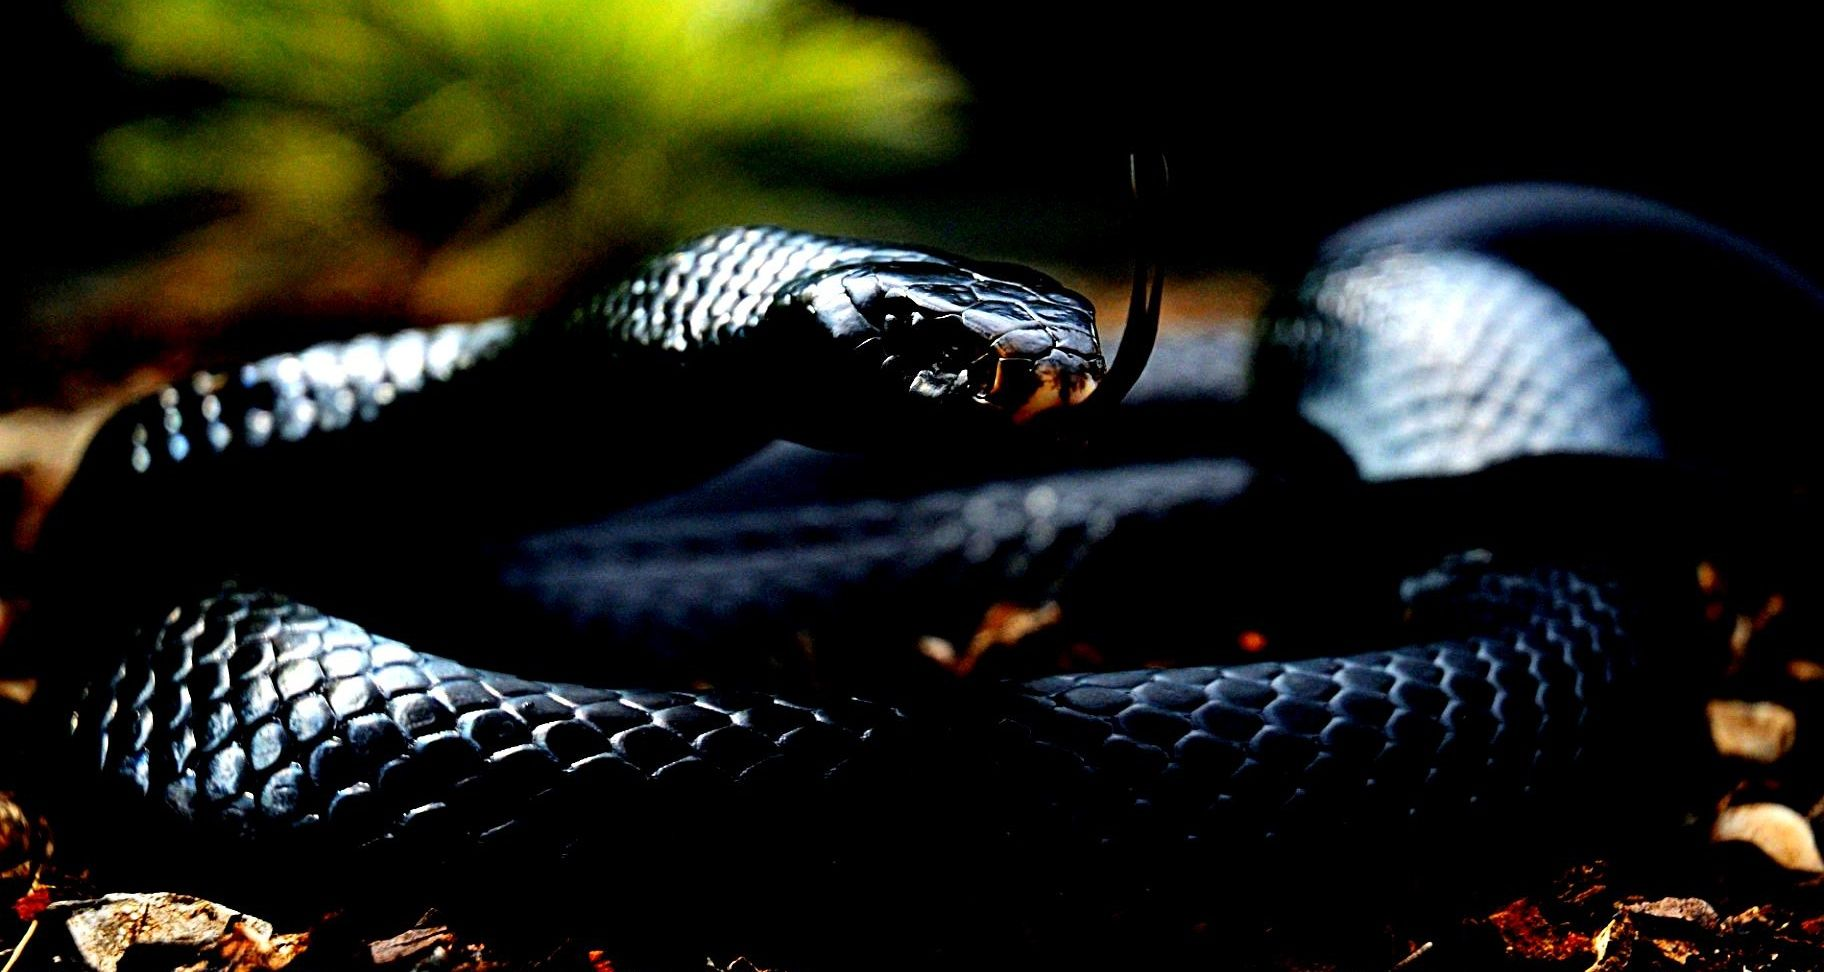 Collection Of Black Mamba Snake Wallpapers On HDWallpapers 1824x972 Picture 57